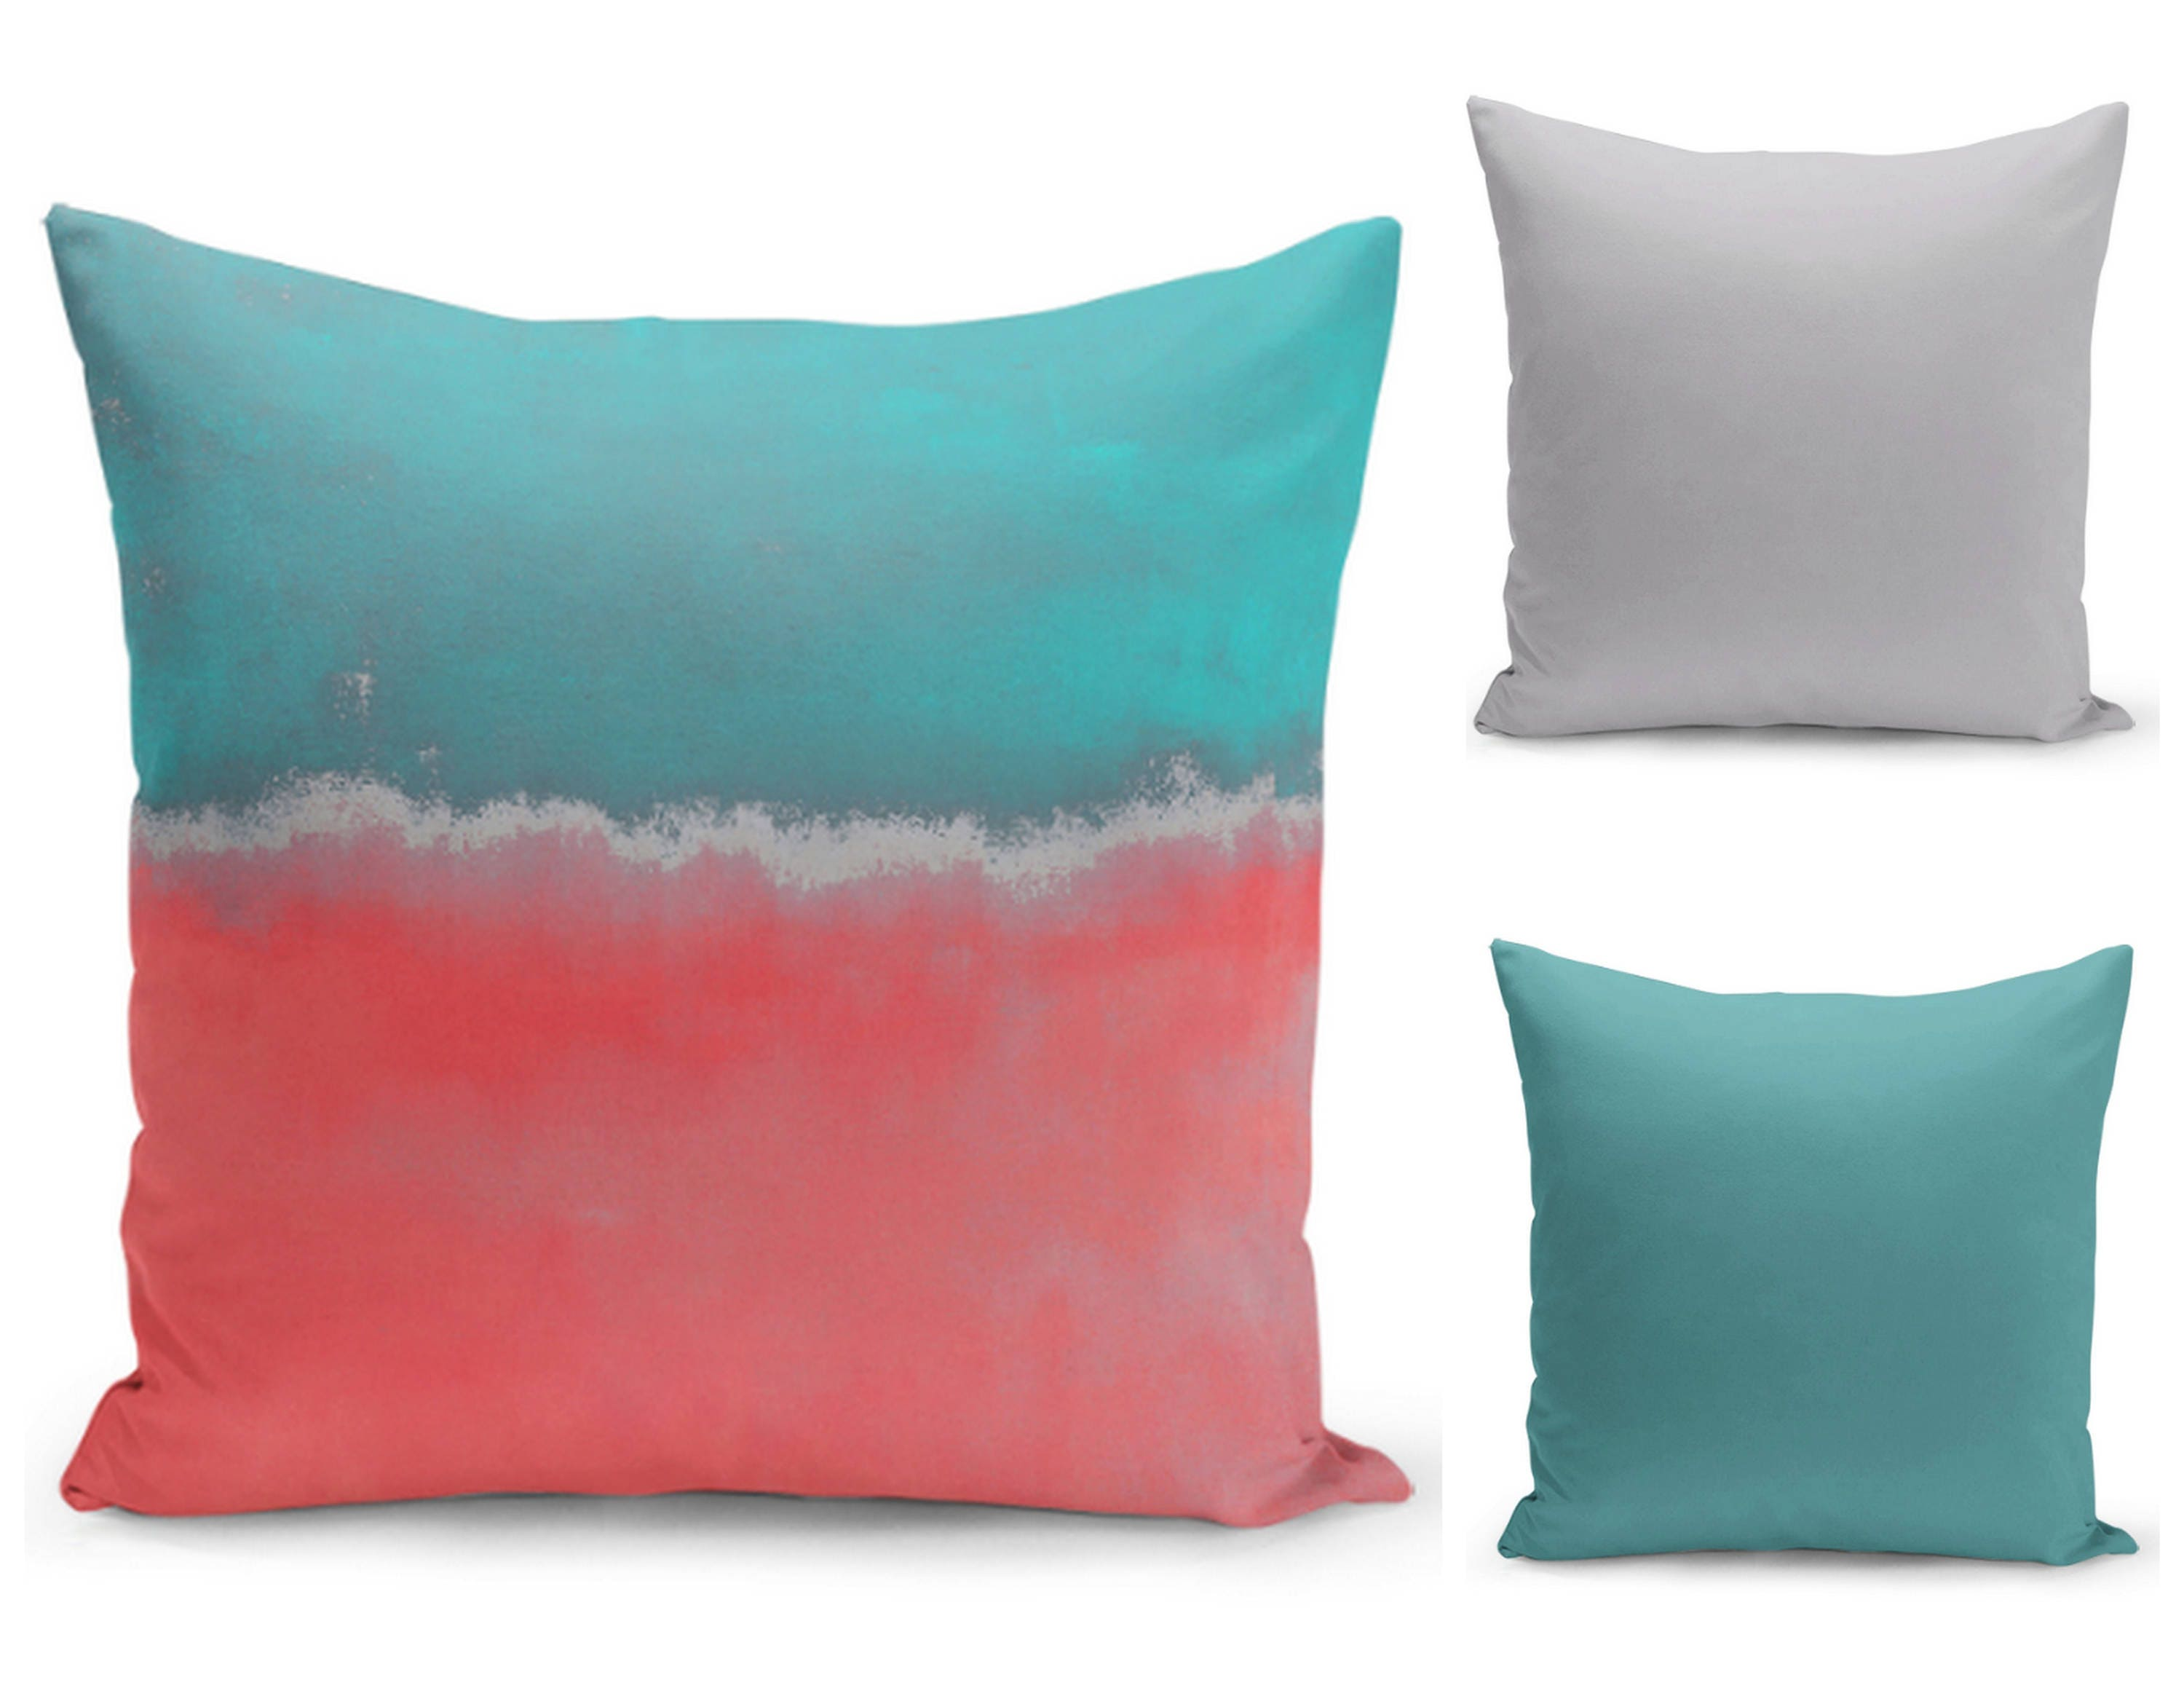 Modern Abstract Pillow : Abstract Throw Pillow Cover Teal Coral Grey Modern Home Decor